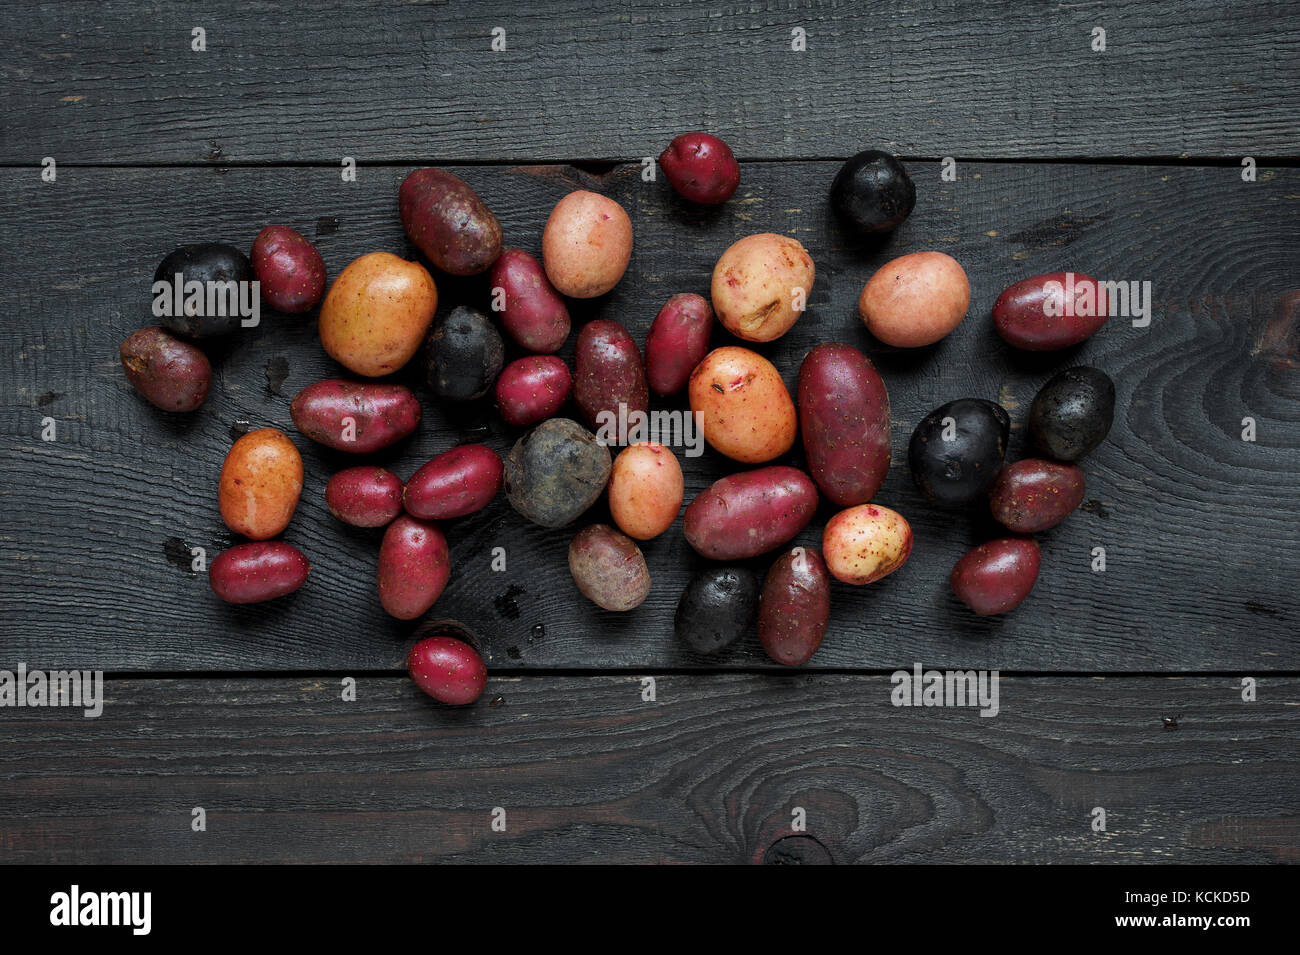 Fresh colorful potatoes on the old wooden table - Stock Image